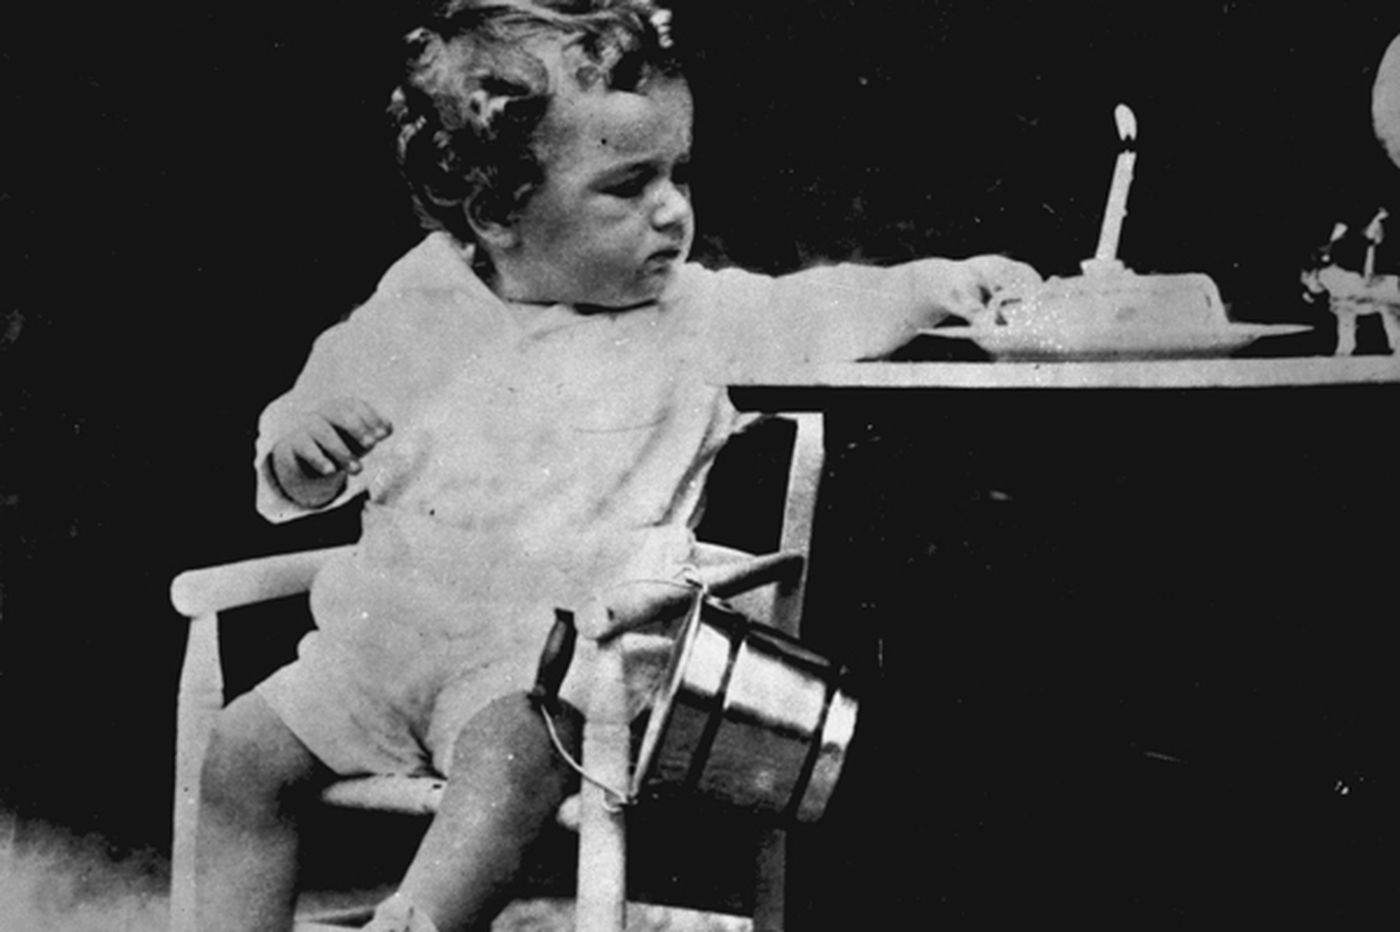 PBS, Ex- FBI agent probe mysteries of Lindbergh kidnapping